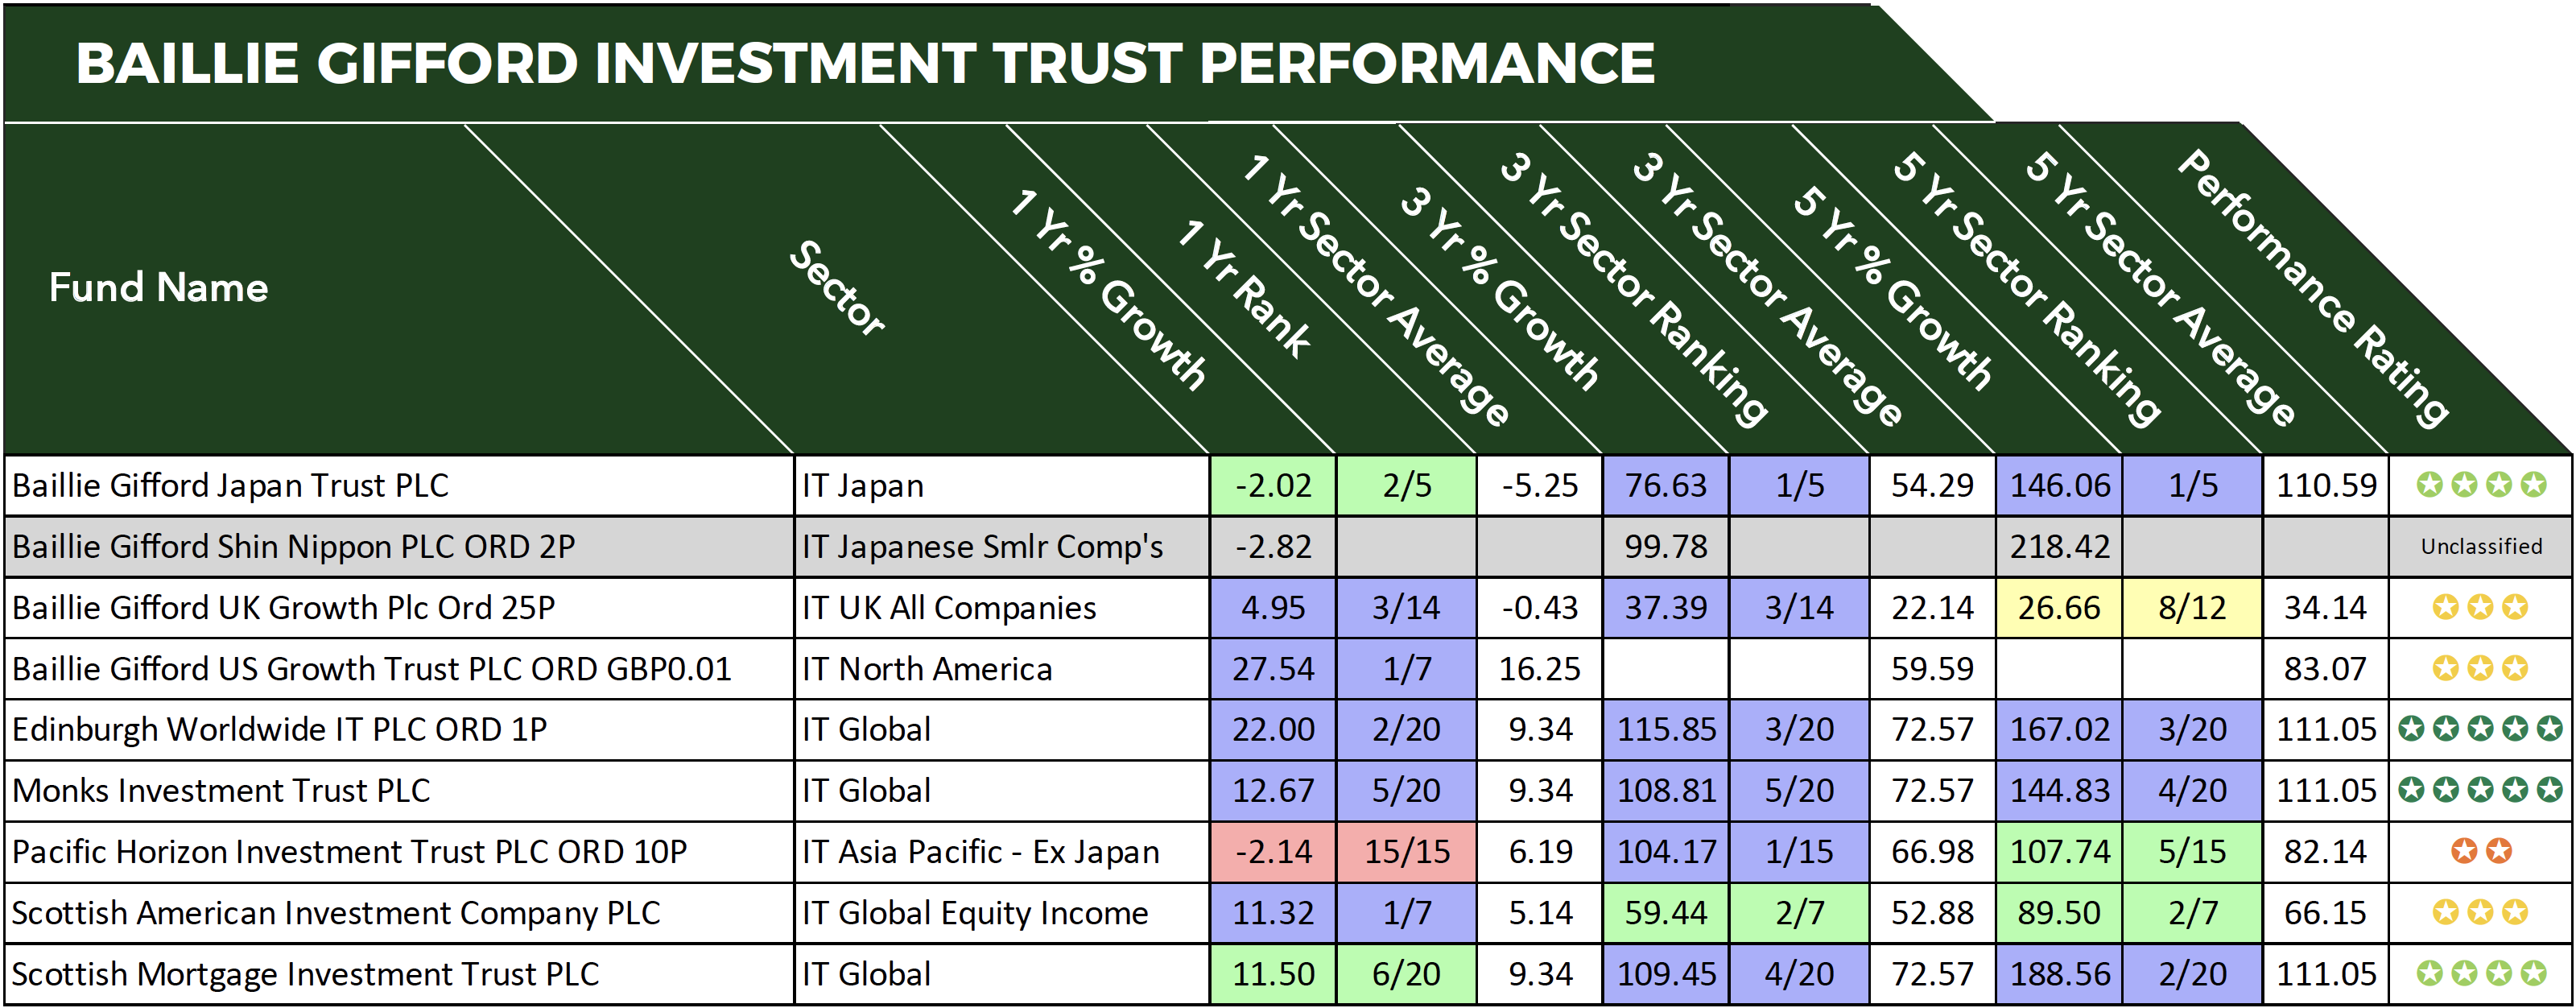 Baillie Gifford Investment Trusts